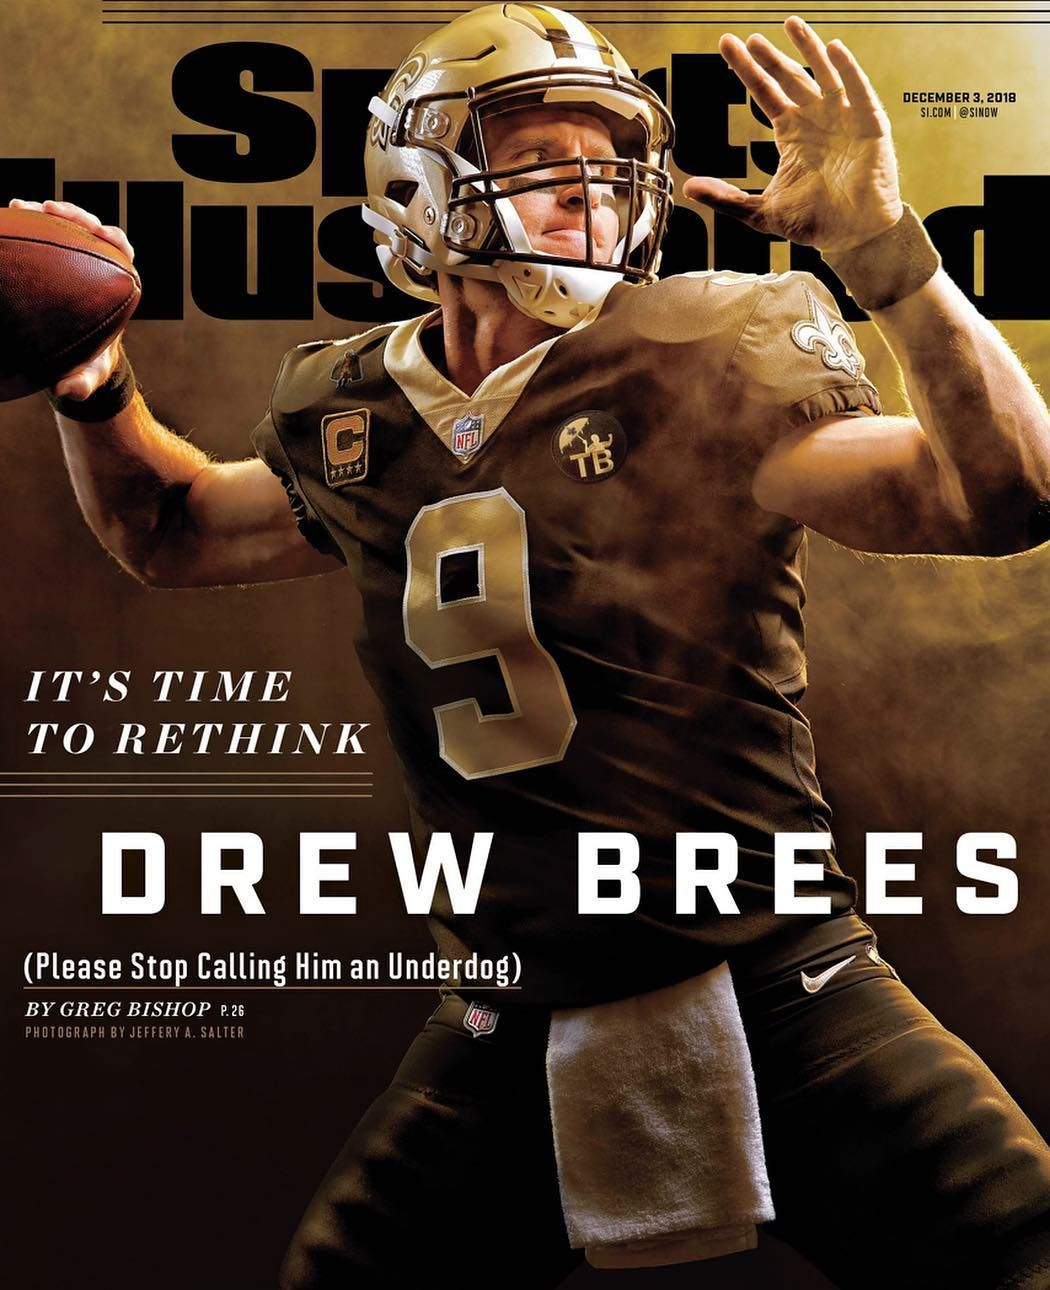 Drew Brees On The Cover Of Sports Illustrated Sports Illustrated Covers Si Cover Sports Illustrated